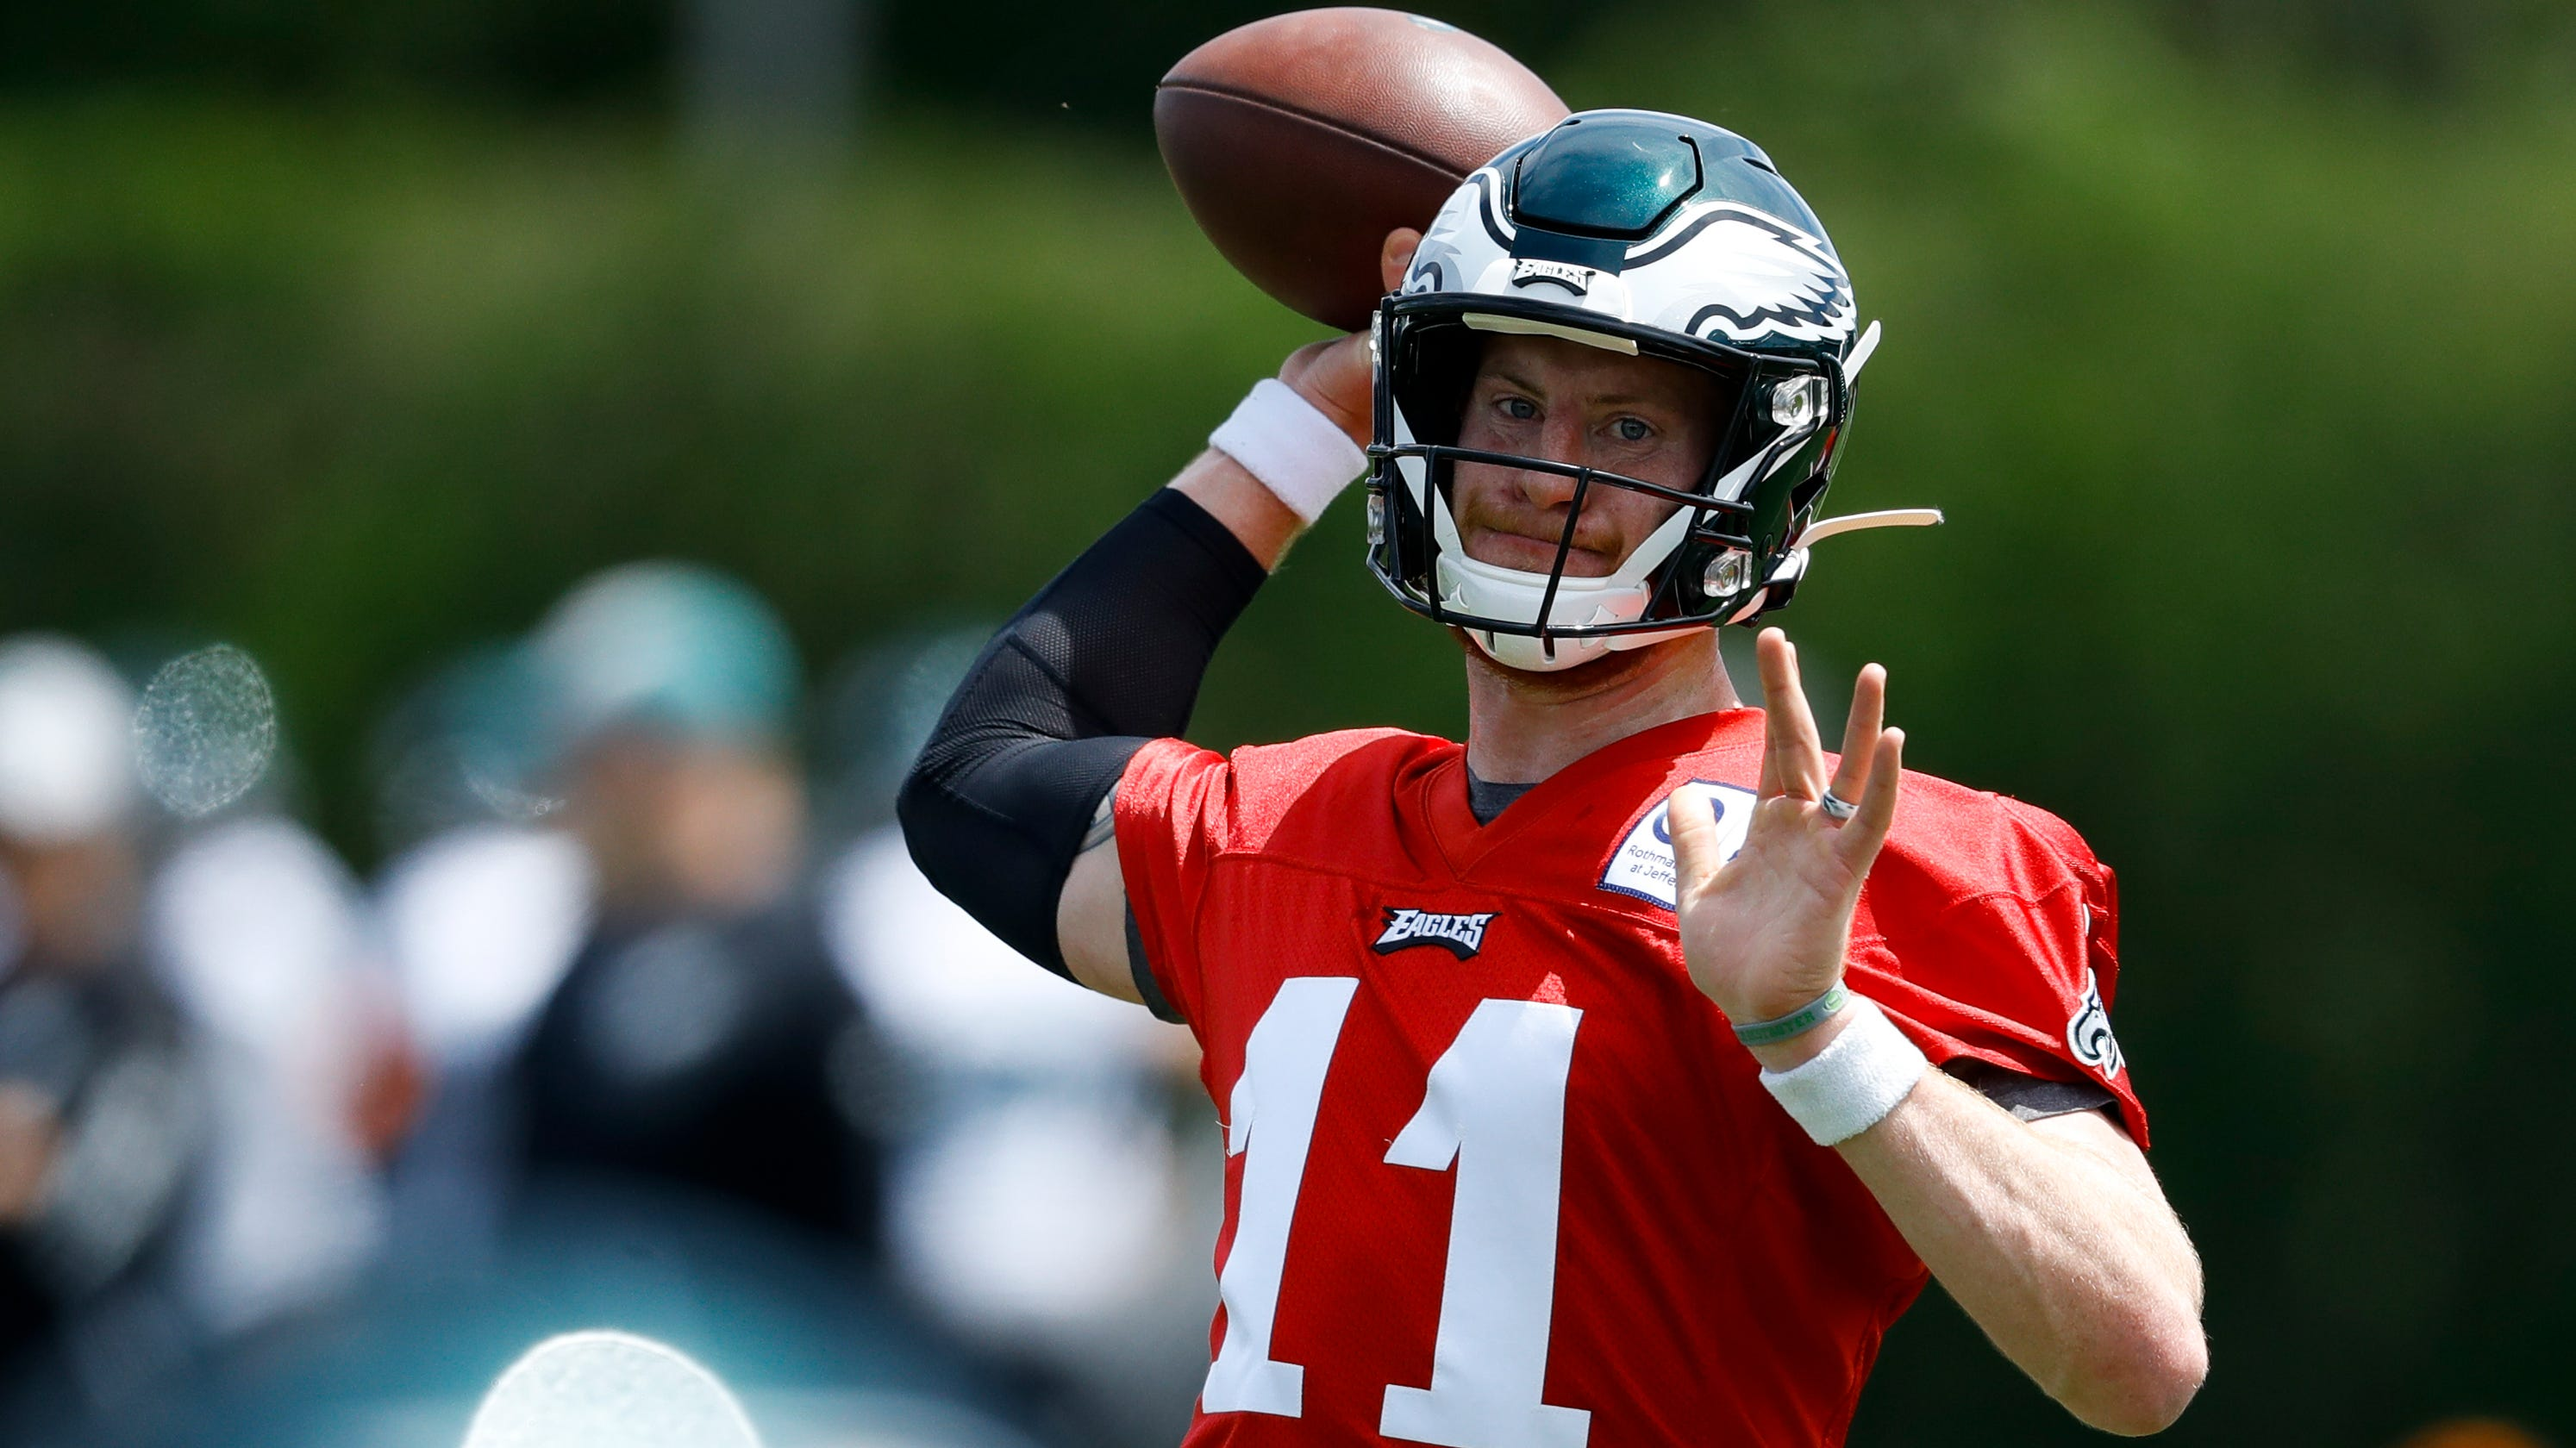 ad94d8b20a6 Eagles' Carson Wentz practicing at OTAs, but Malcolm Jenkins absent